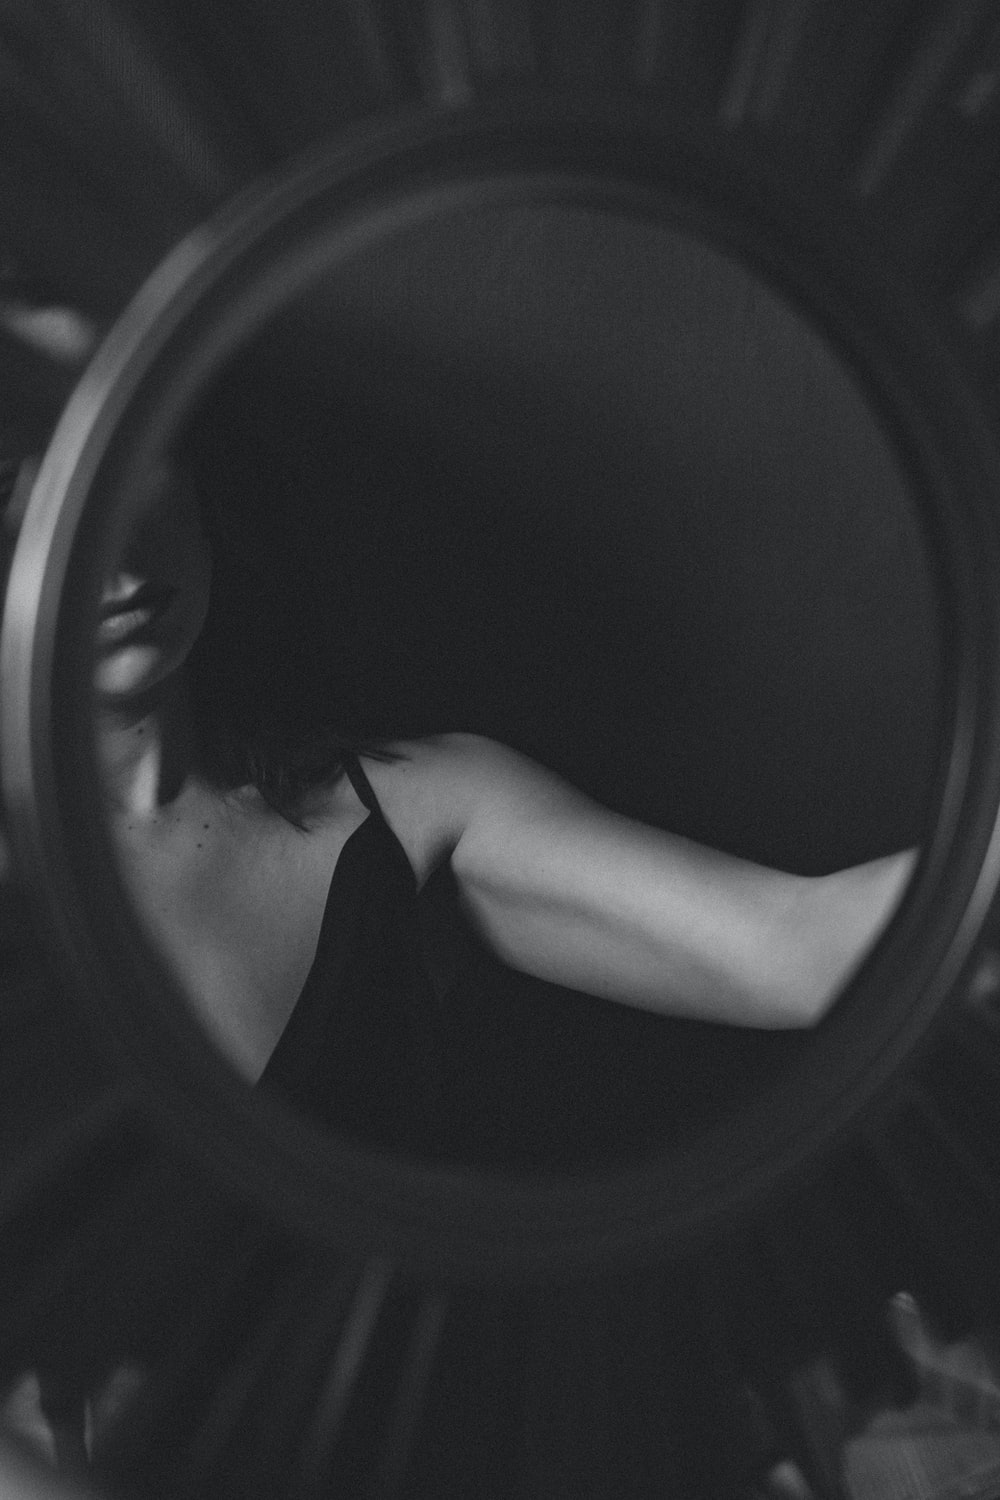 grayscale photo of woman in black brassiere